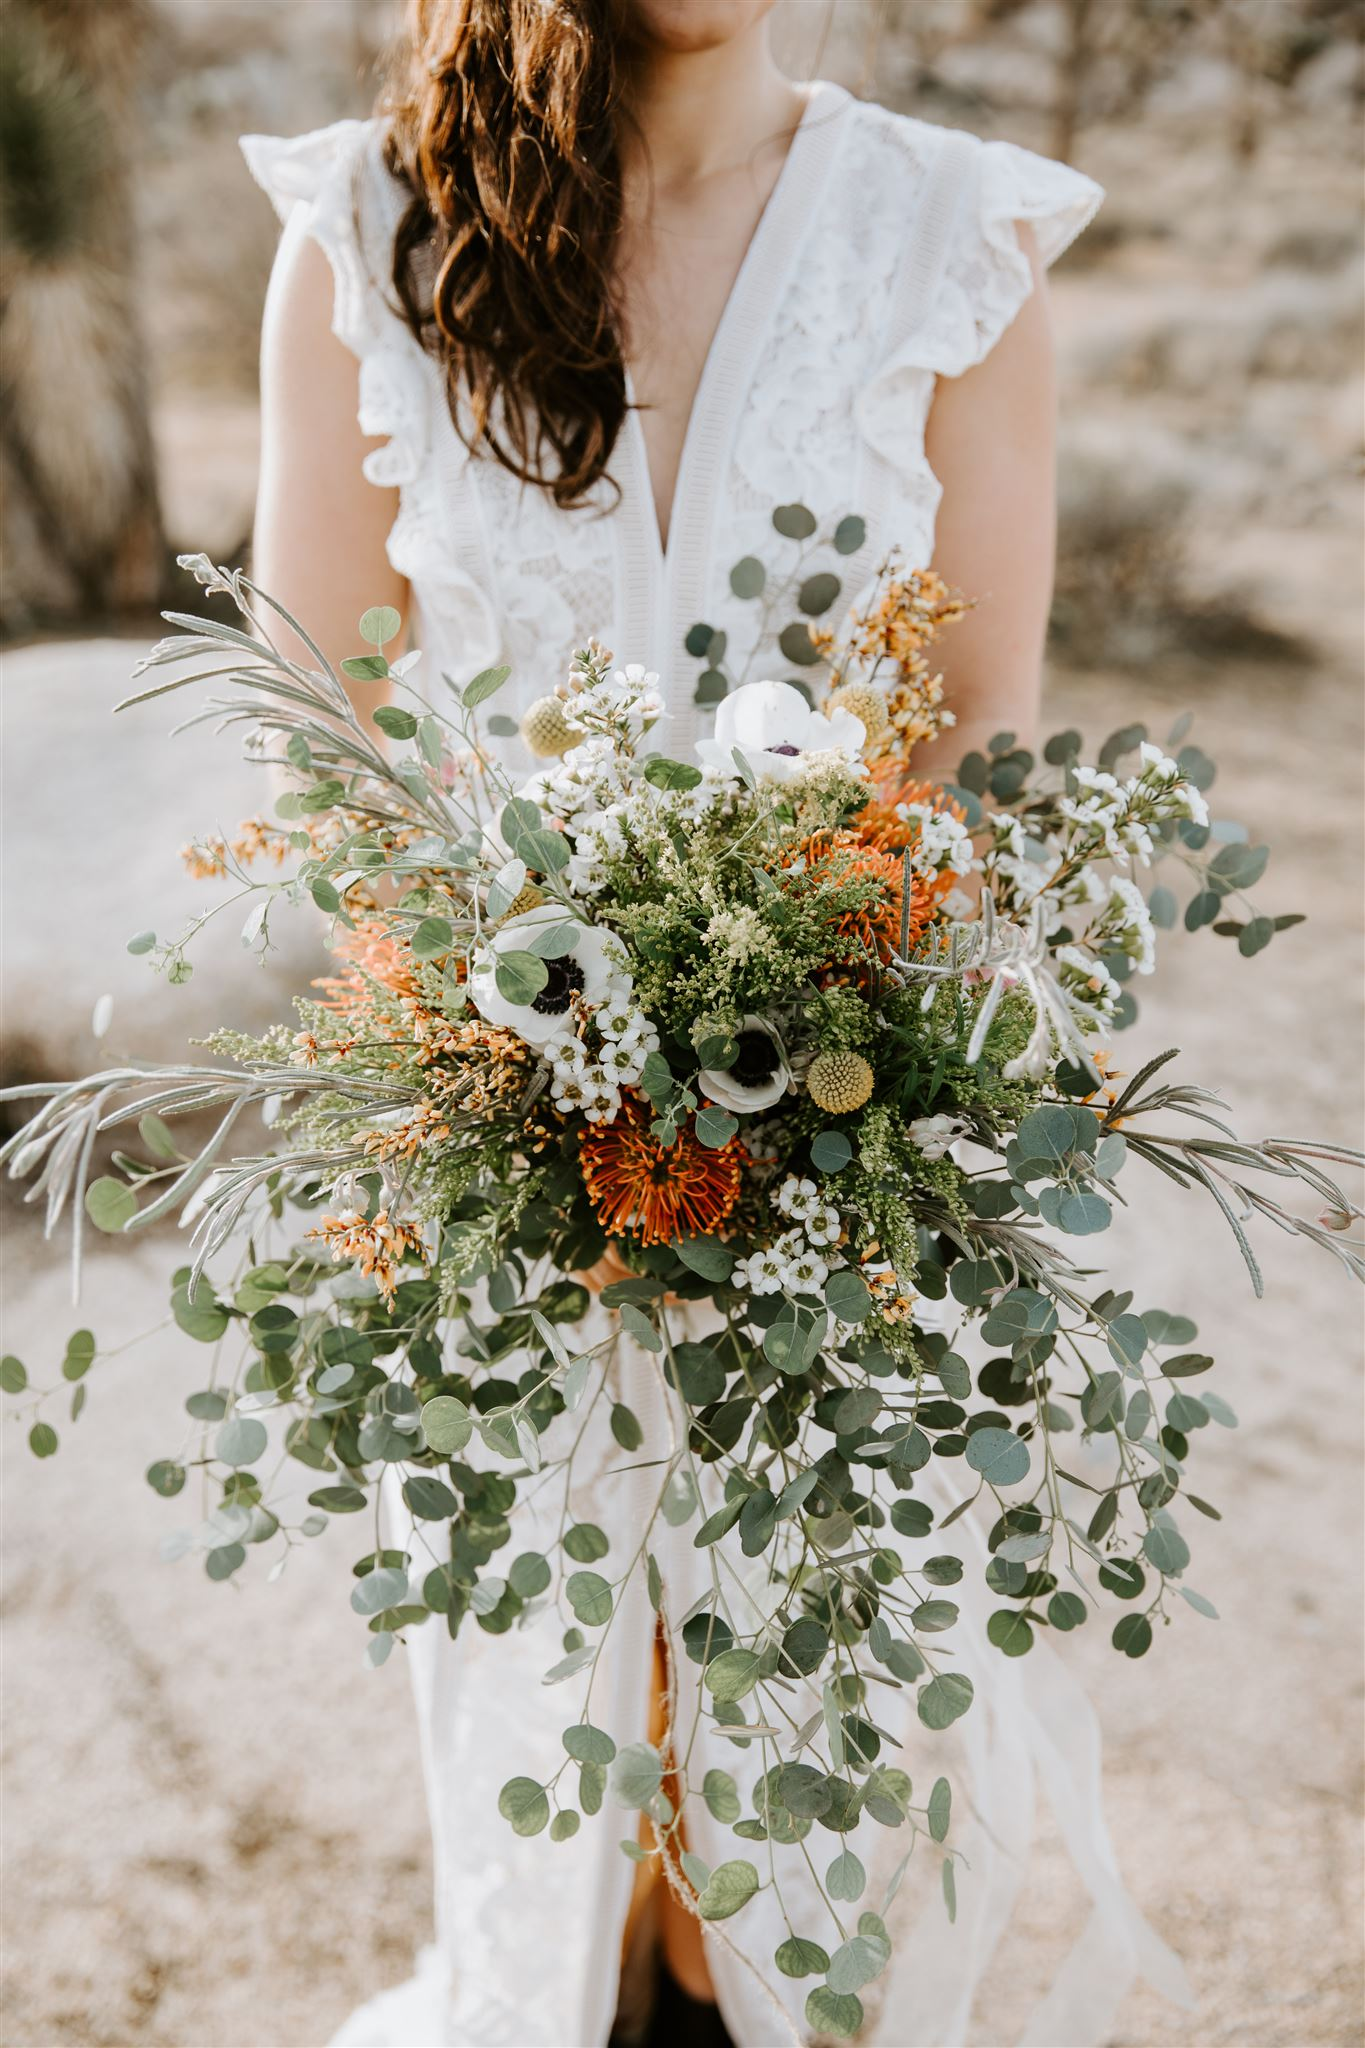 Joshua Tree CA Elopement Wedding  Photographer May Iosotaluno 11.jpg